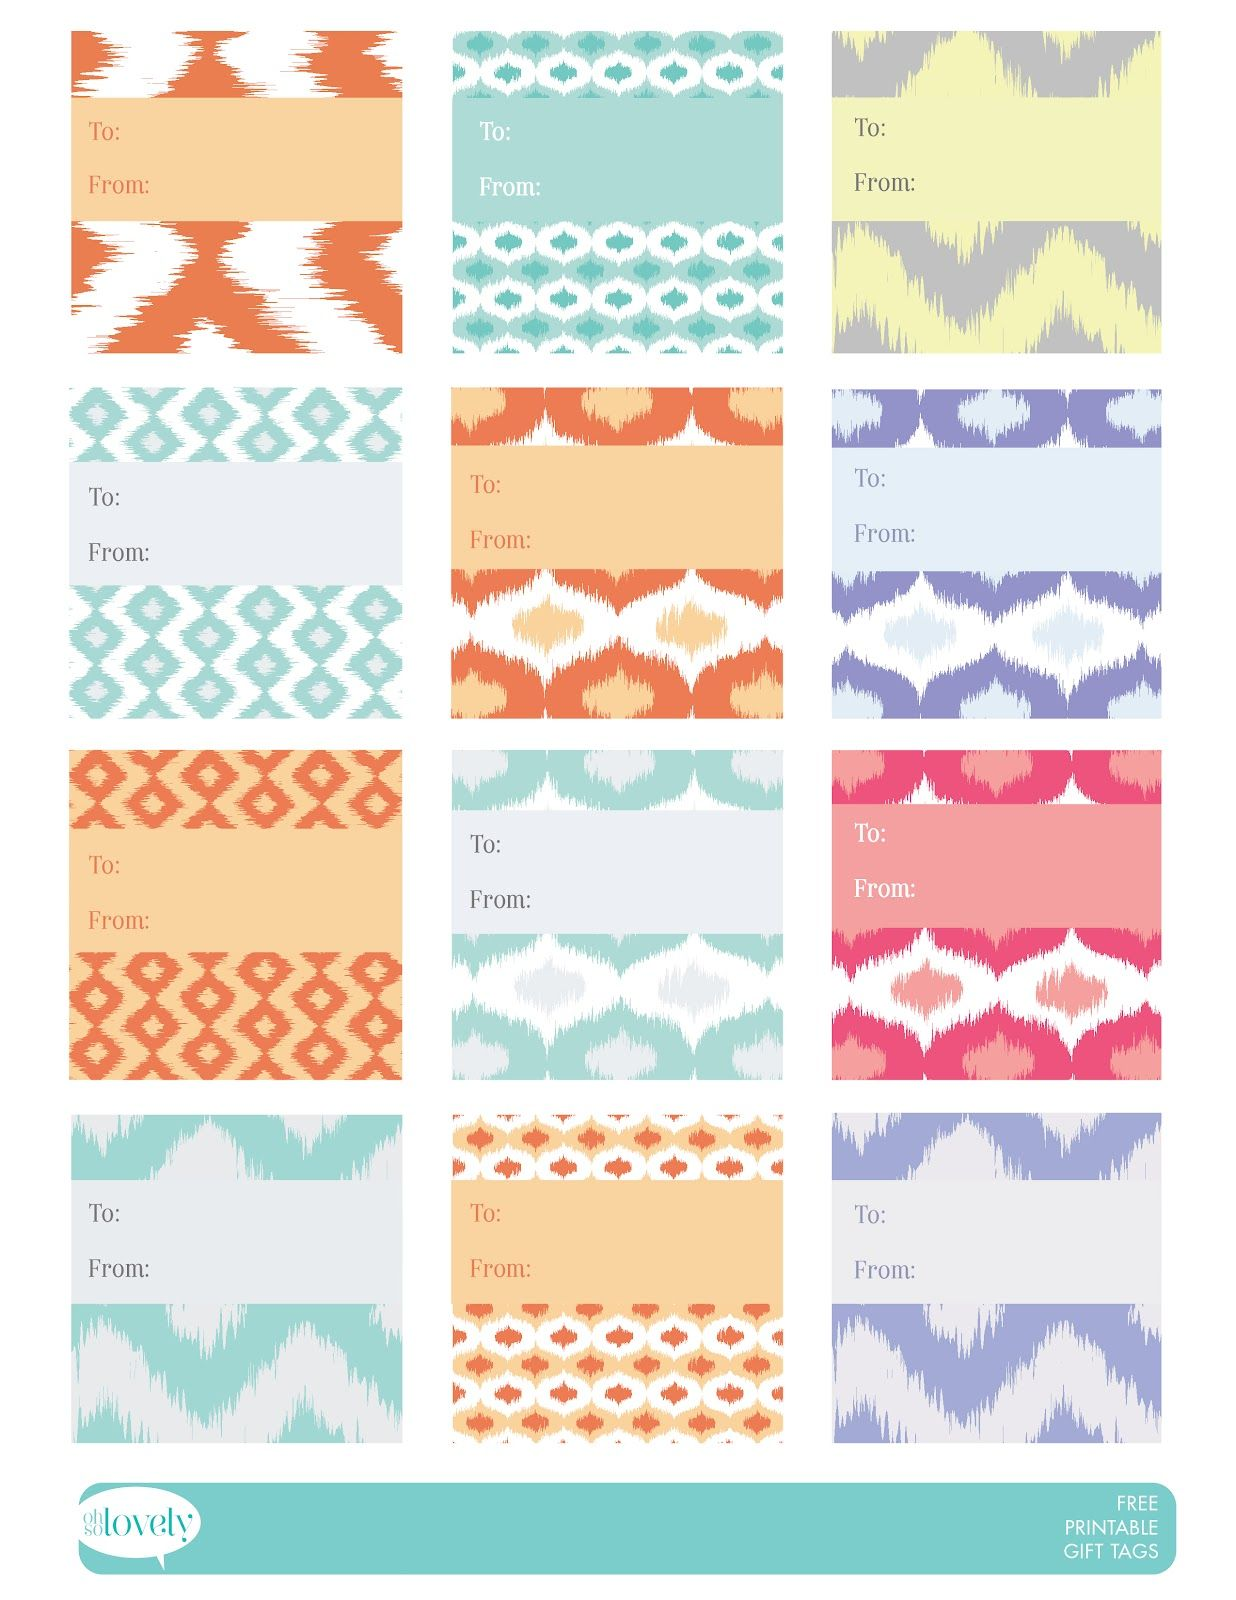 Oh so lovely oh so lovely free printable gift tags downloadable free printable gift tags retro chevron herringbone and ikat made gifts handmade gifts it yourself solutioingenieria Images